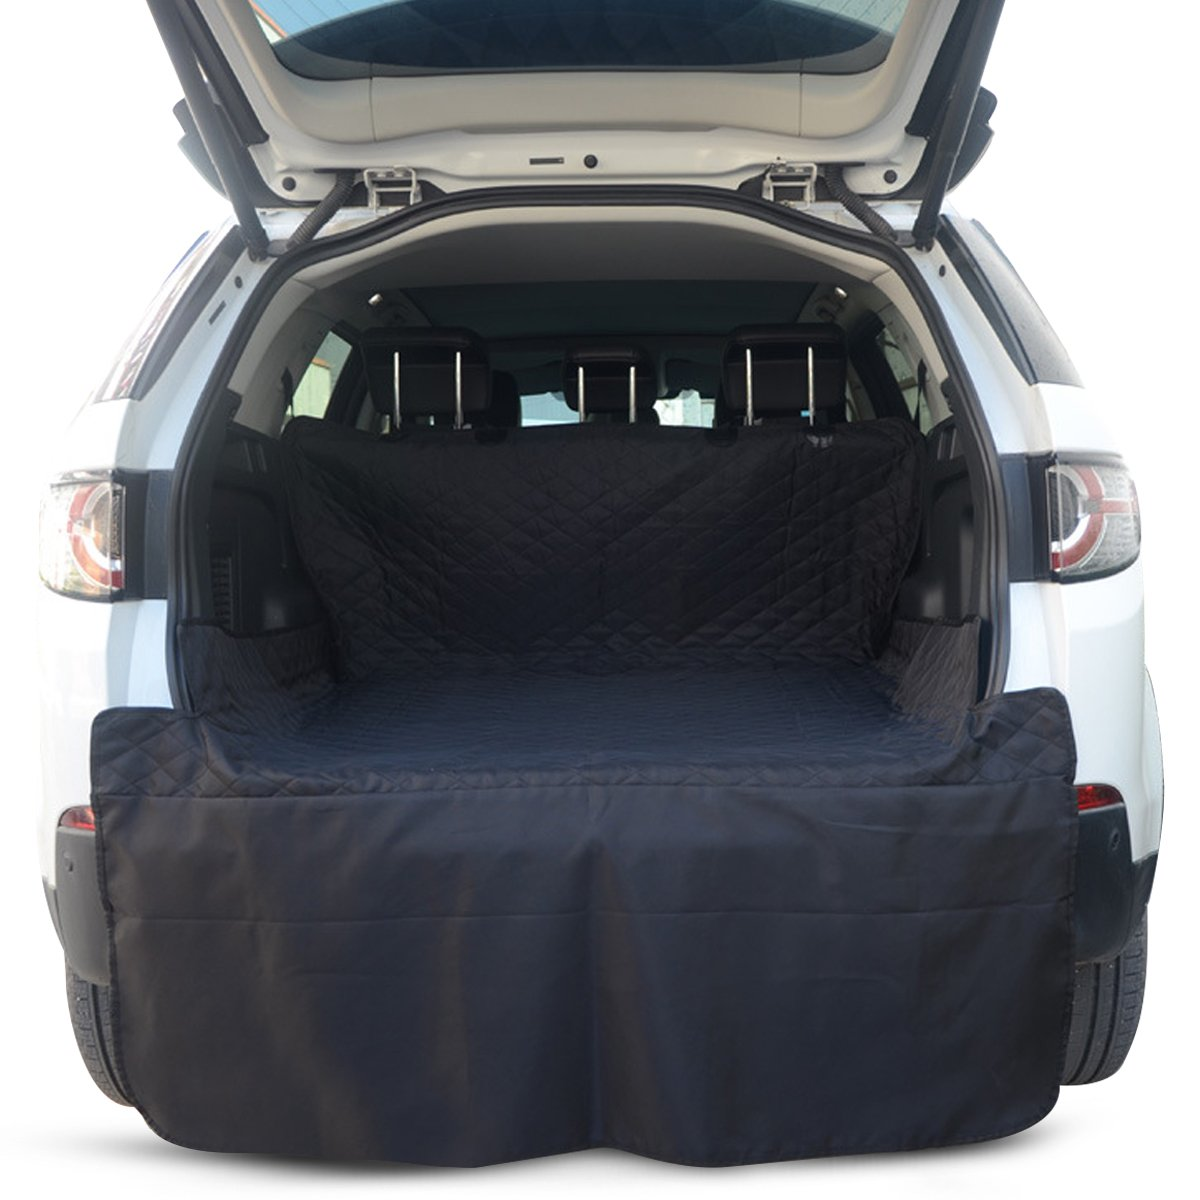 Black PETCUTE Car Boot Liner Predector Car Rear Back Seat Cover Pet Back Seat Cover Durable and Waterproof Universal for SUV Car Trunk Mat